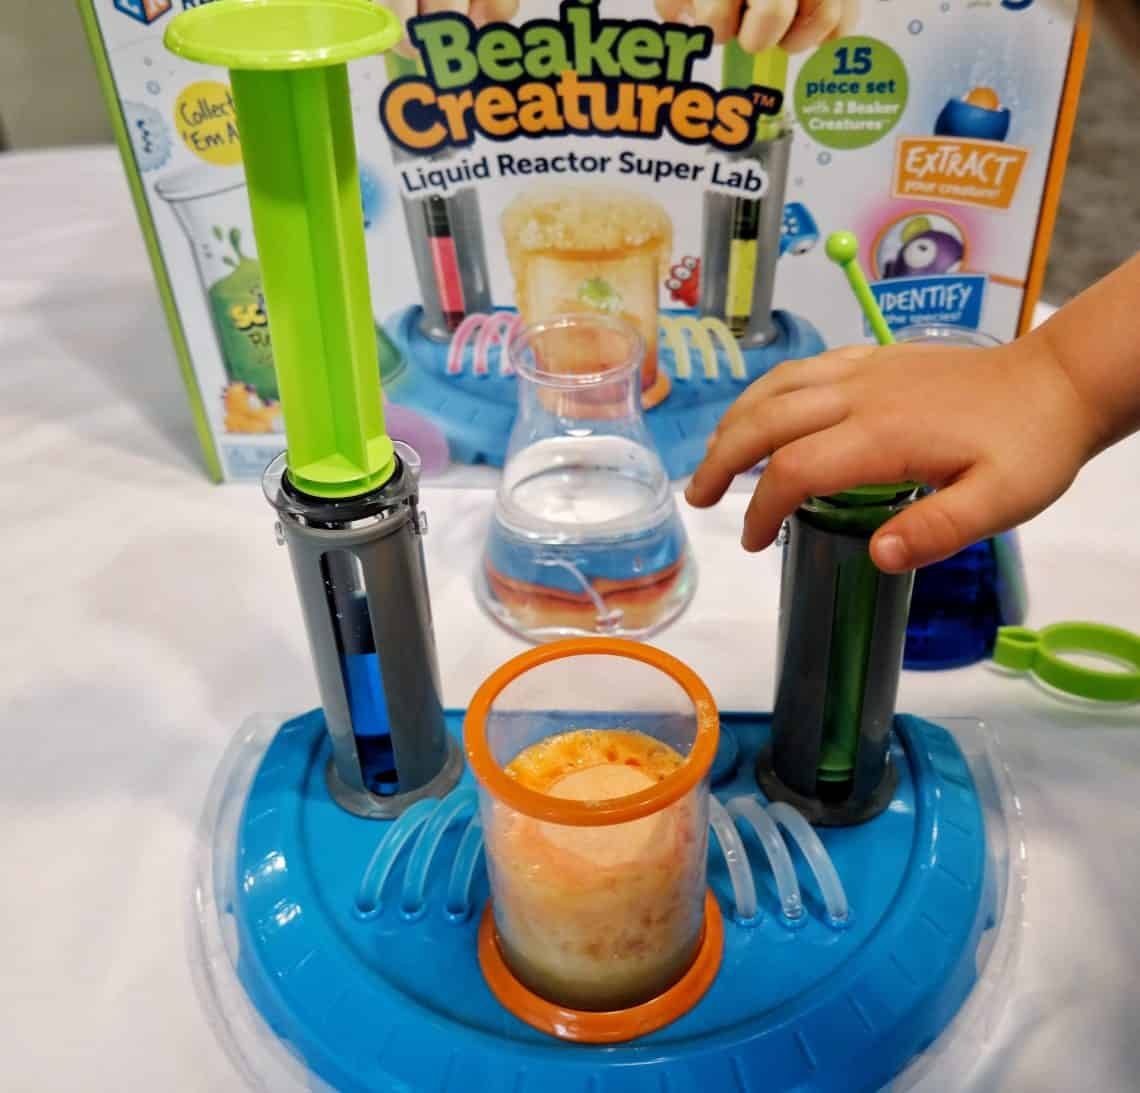 Beaker Creatures keep kids learning over summer